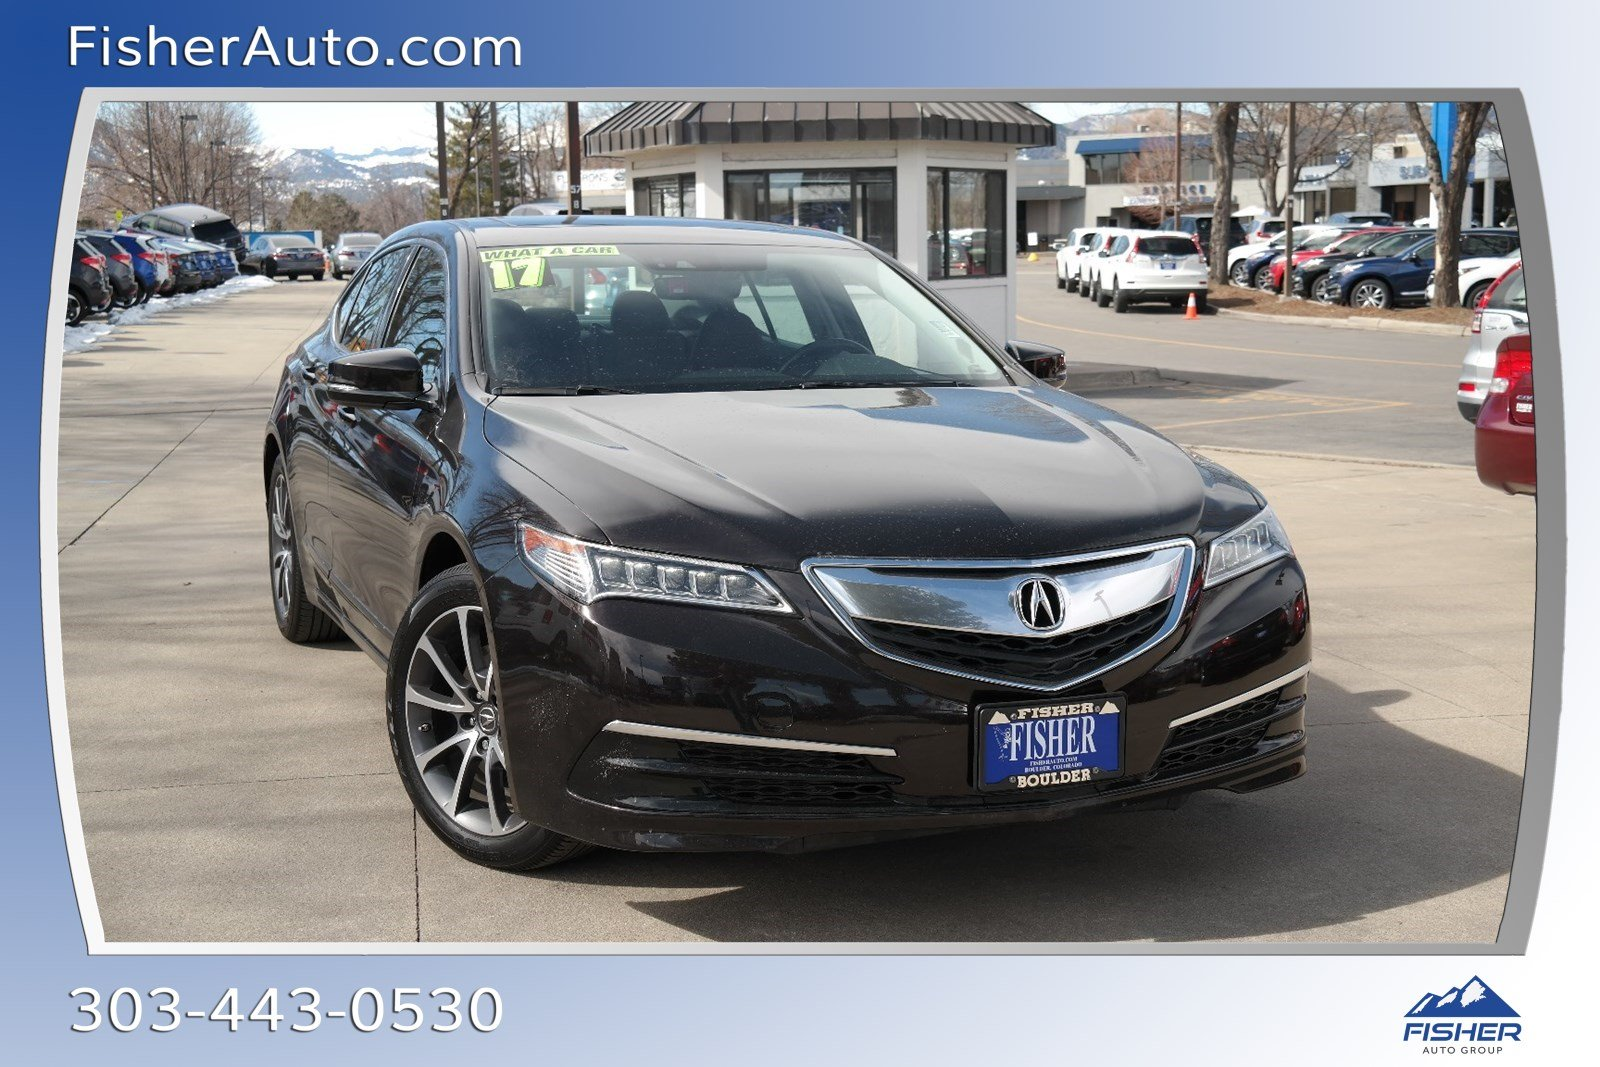 Pre-Owned 2017 Acura TLX SH-AWD V6 w/Technology Pkg